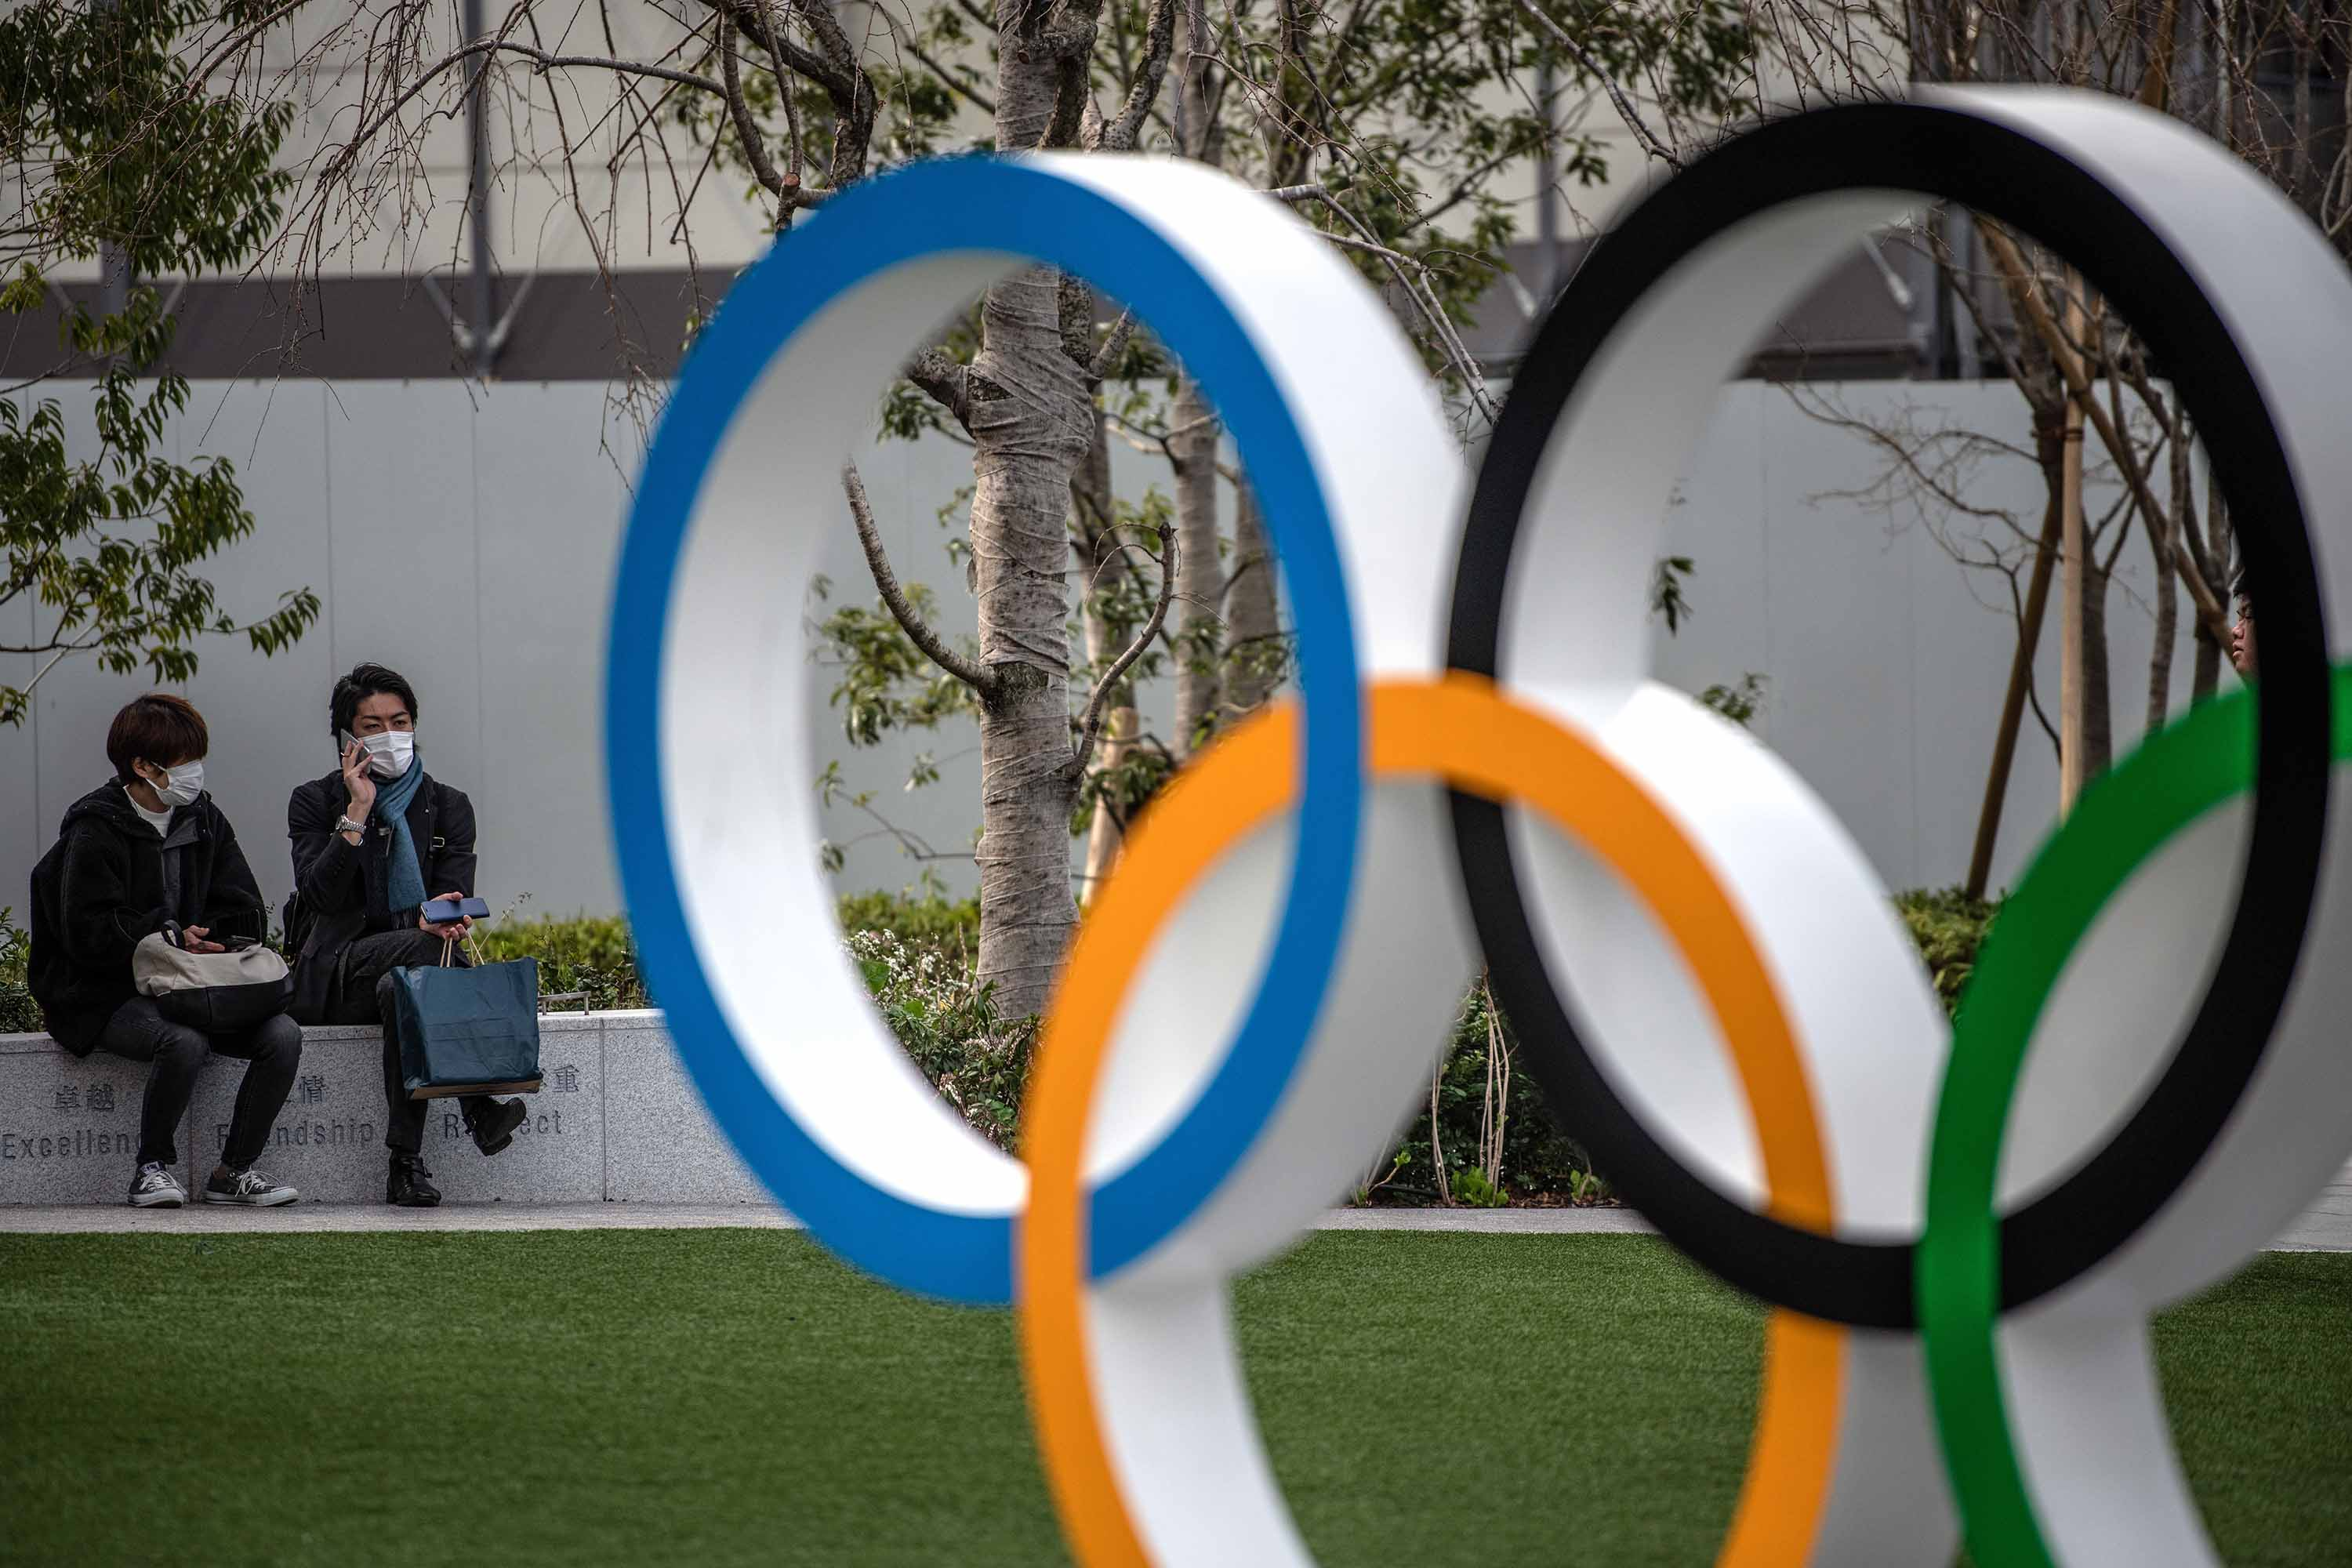 Longtime IOC member Dick Pound predicts Tokyo Olympics will be postponed